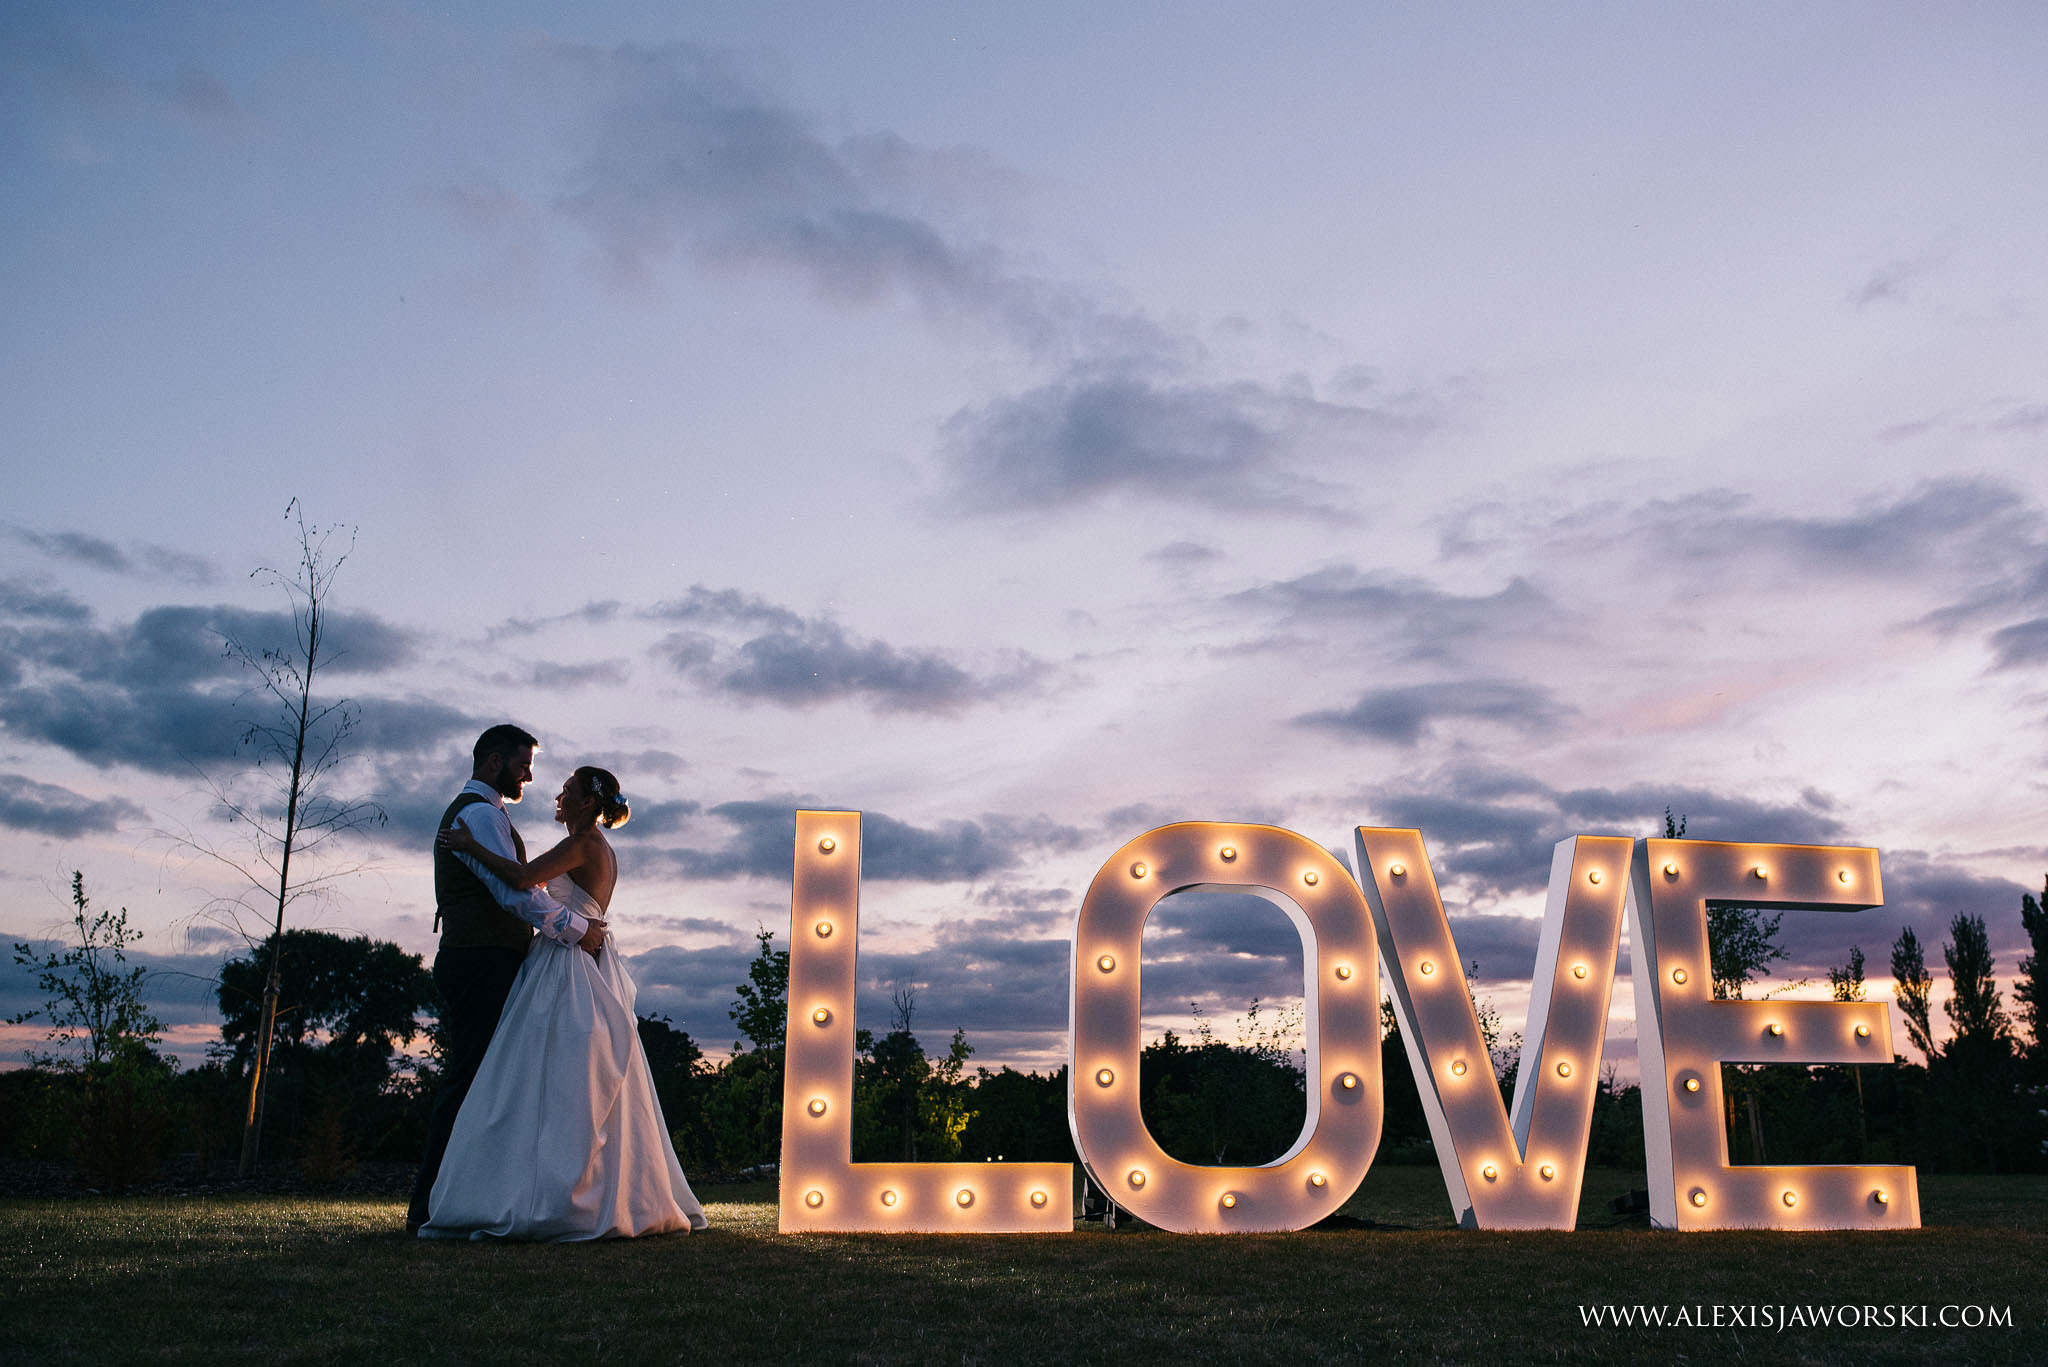 night portrait with Love sign